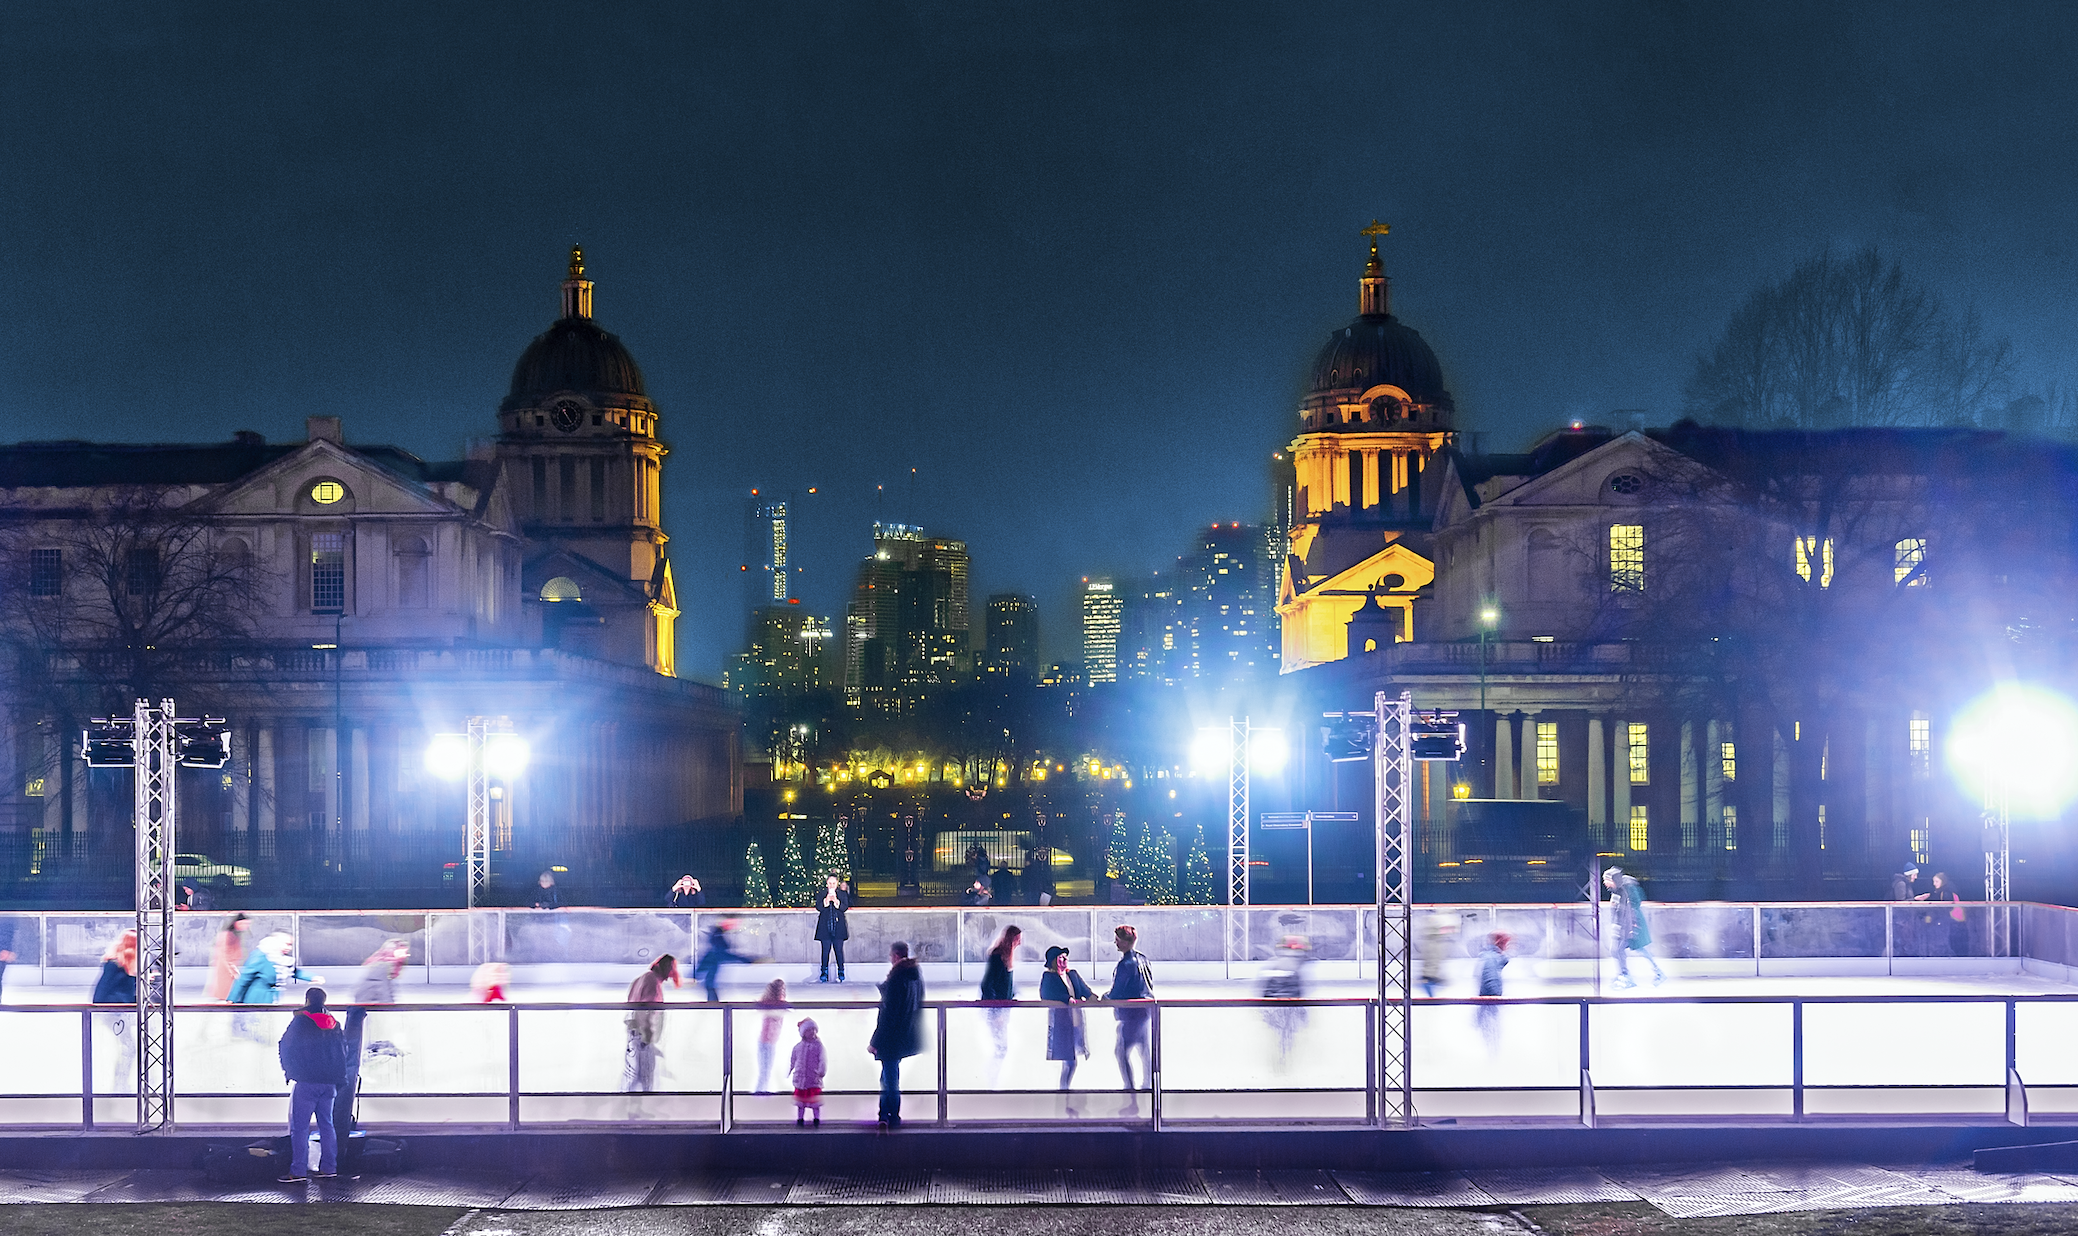 The Queen's House Ice Rink